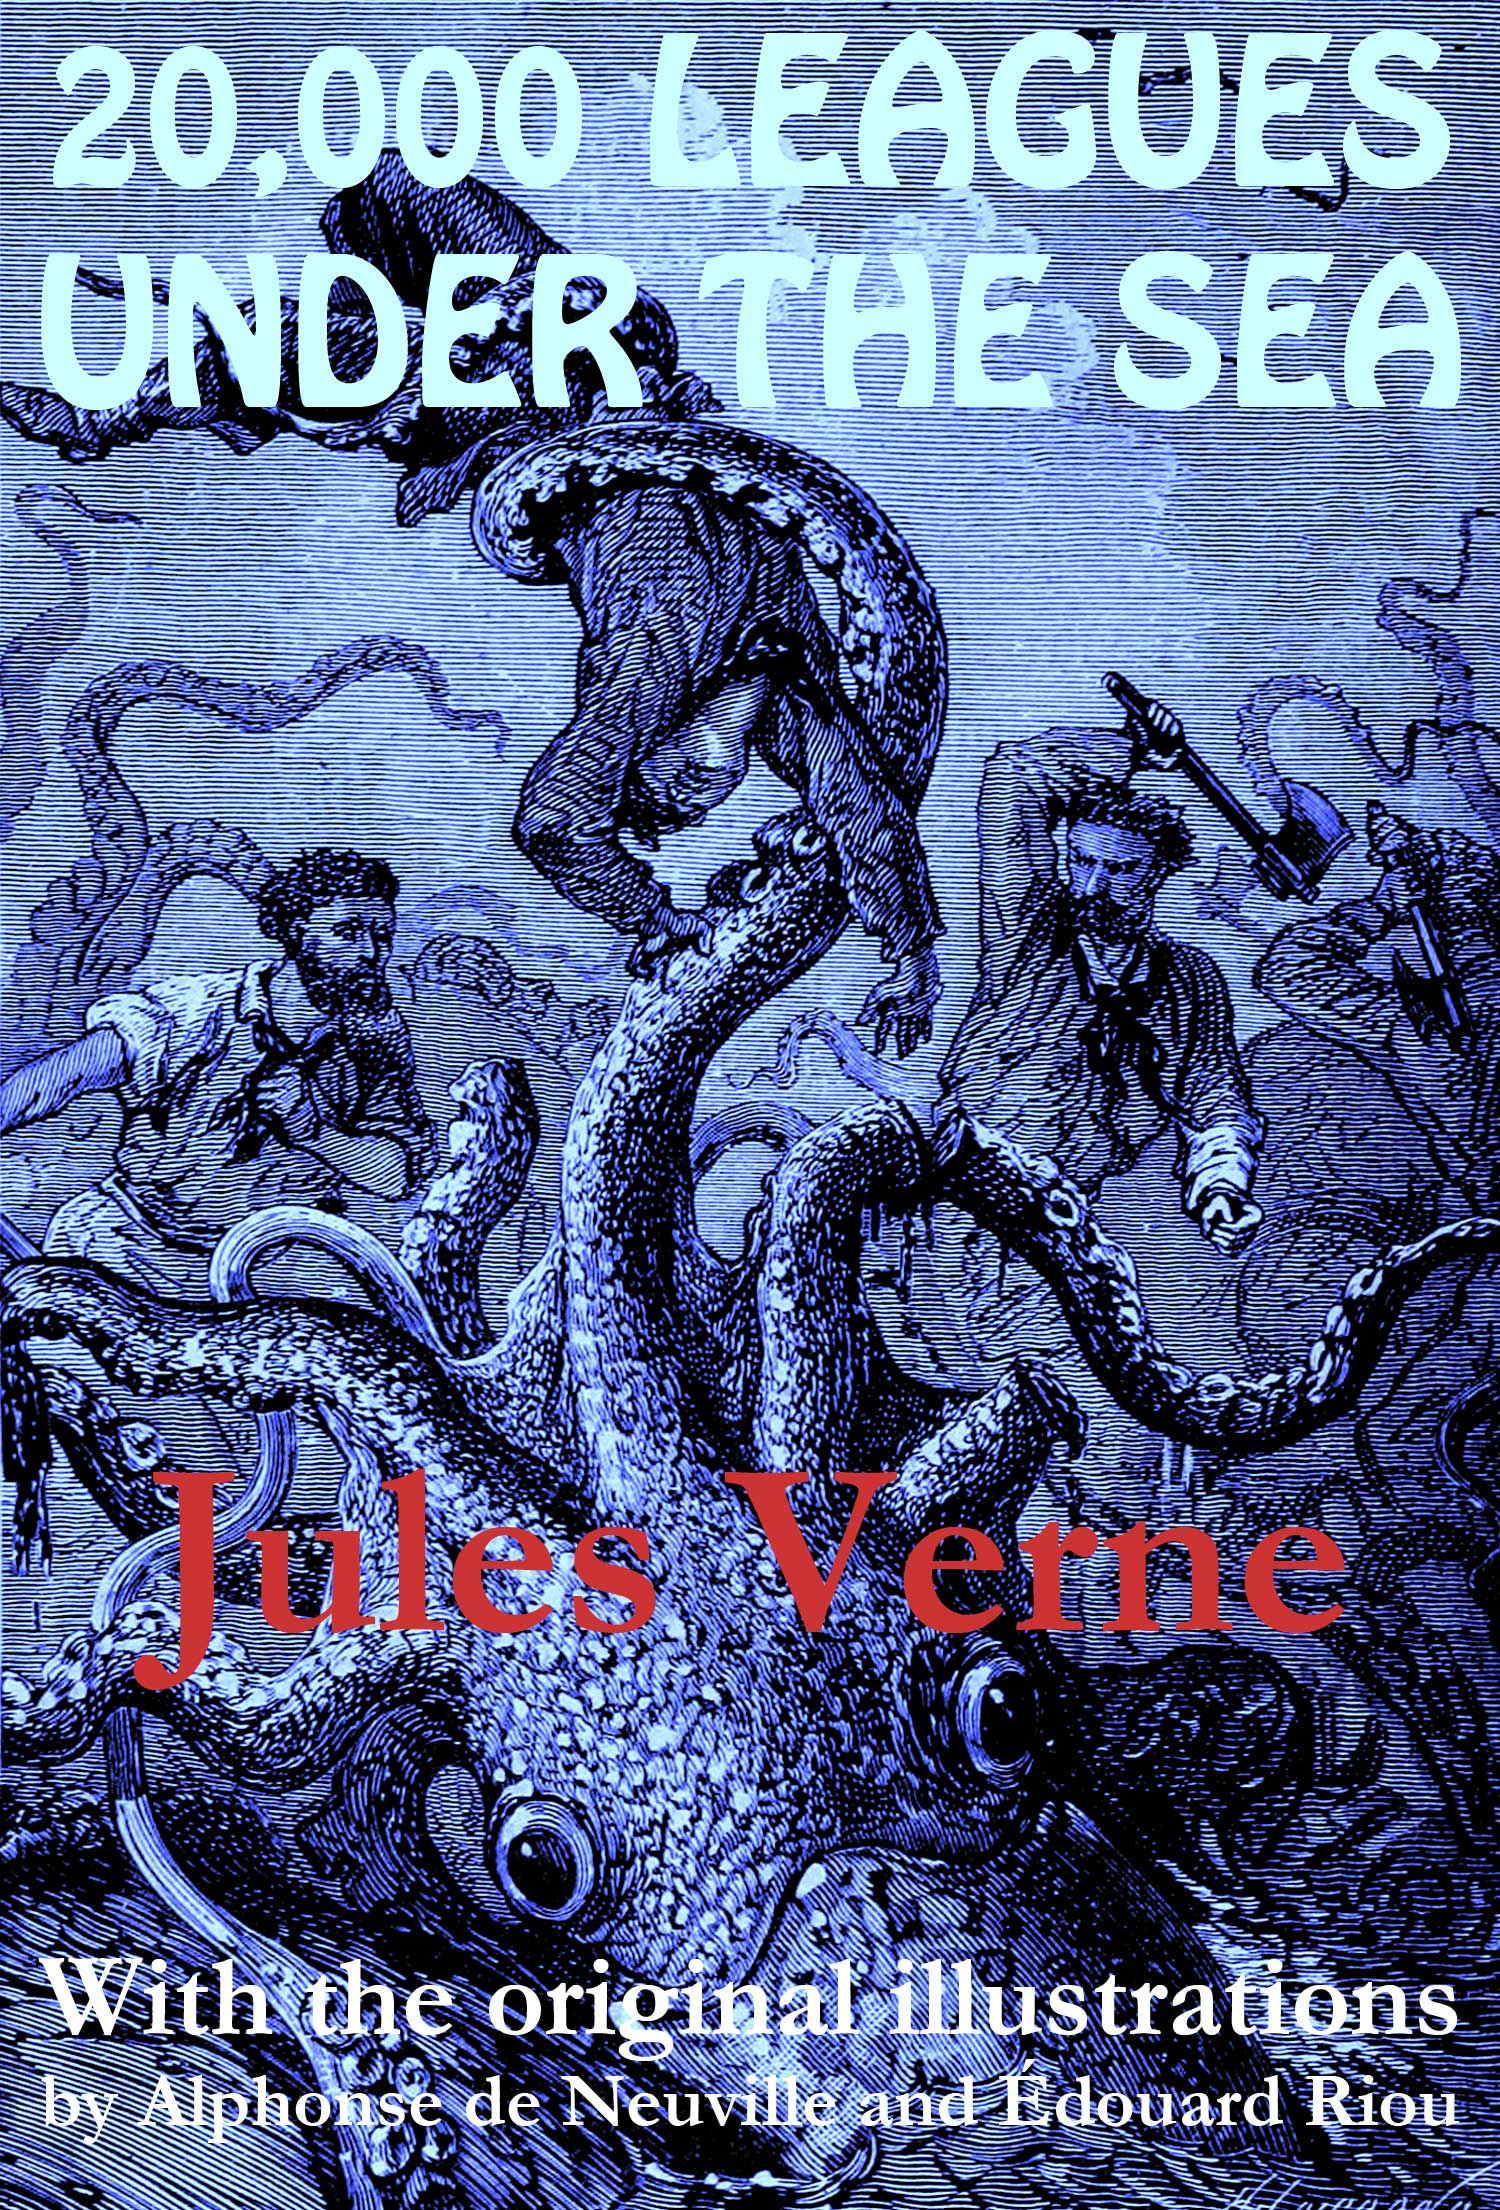 20,000 Leagues Under the Sea (with the original illustrations by Alphonse de Neuville)